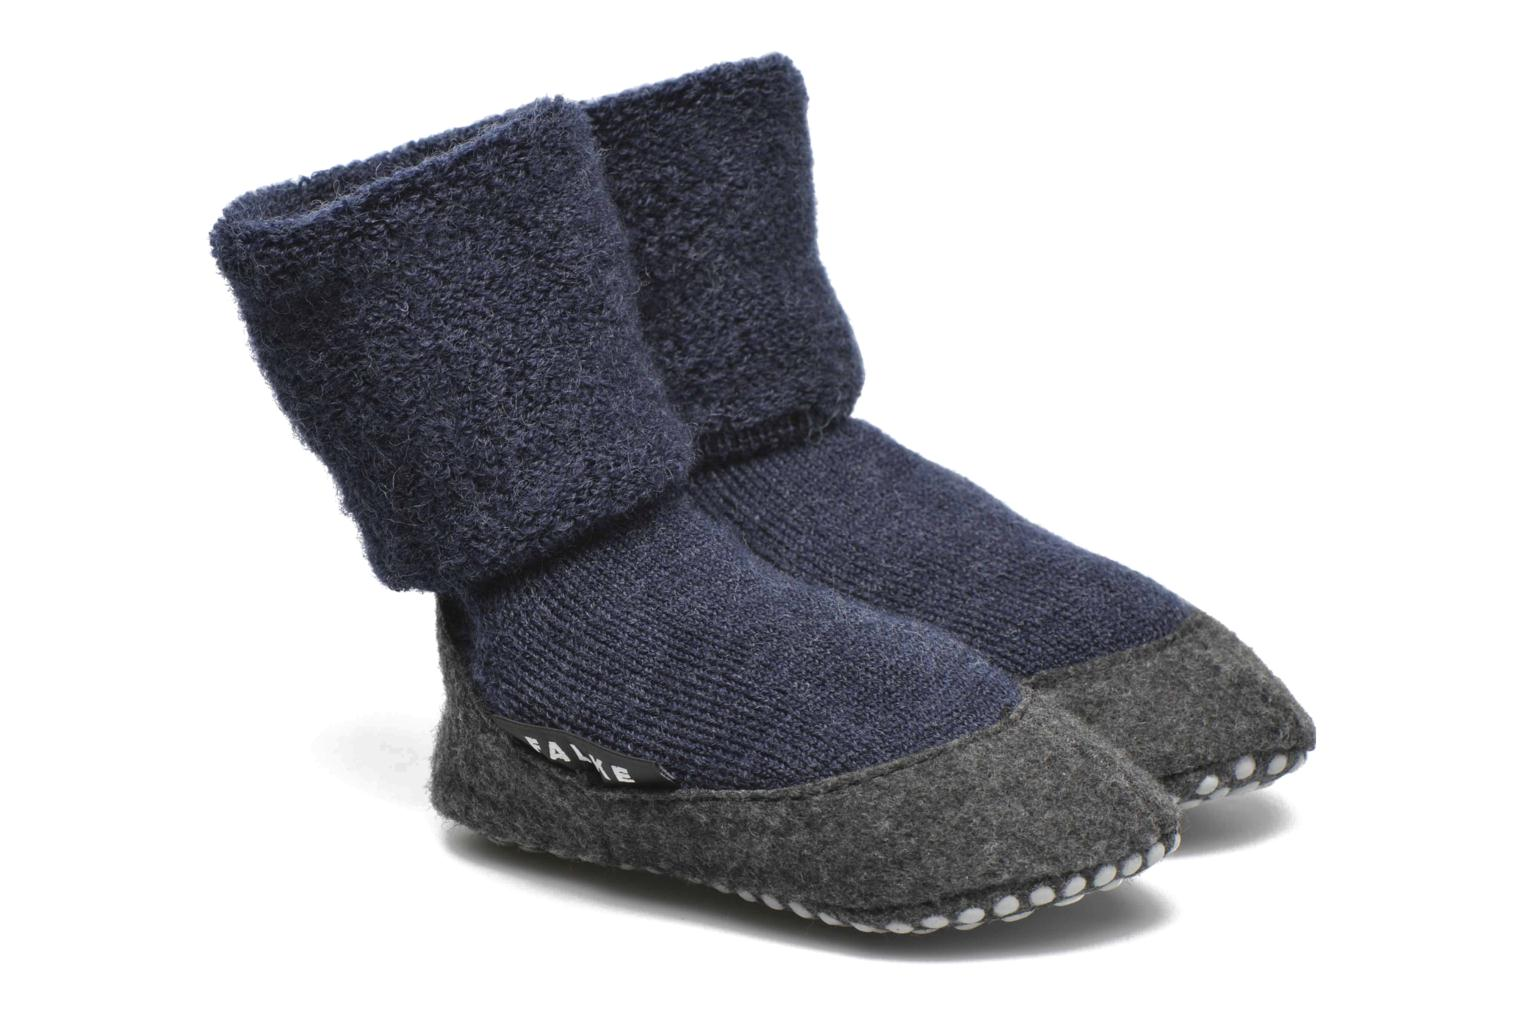 Chaussons-chaussettes Cosyshoes 6680